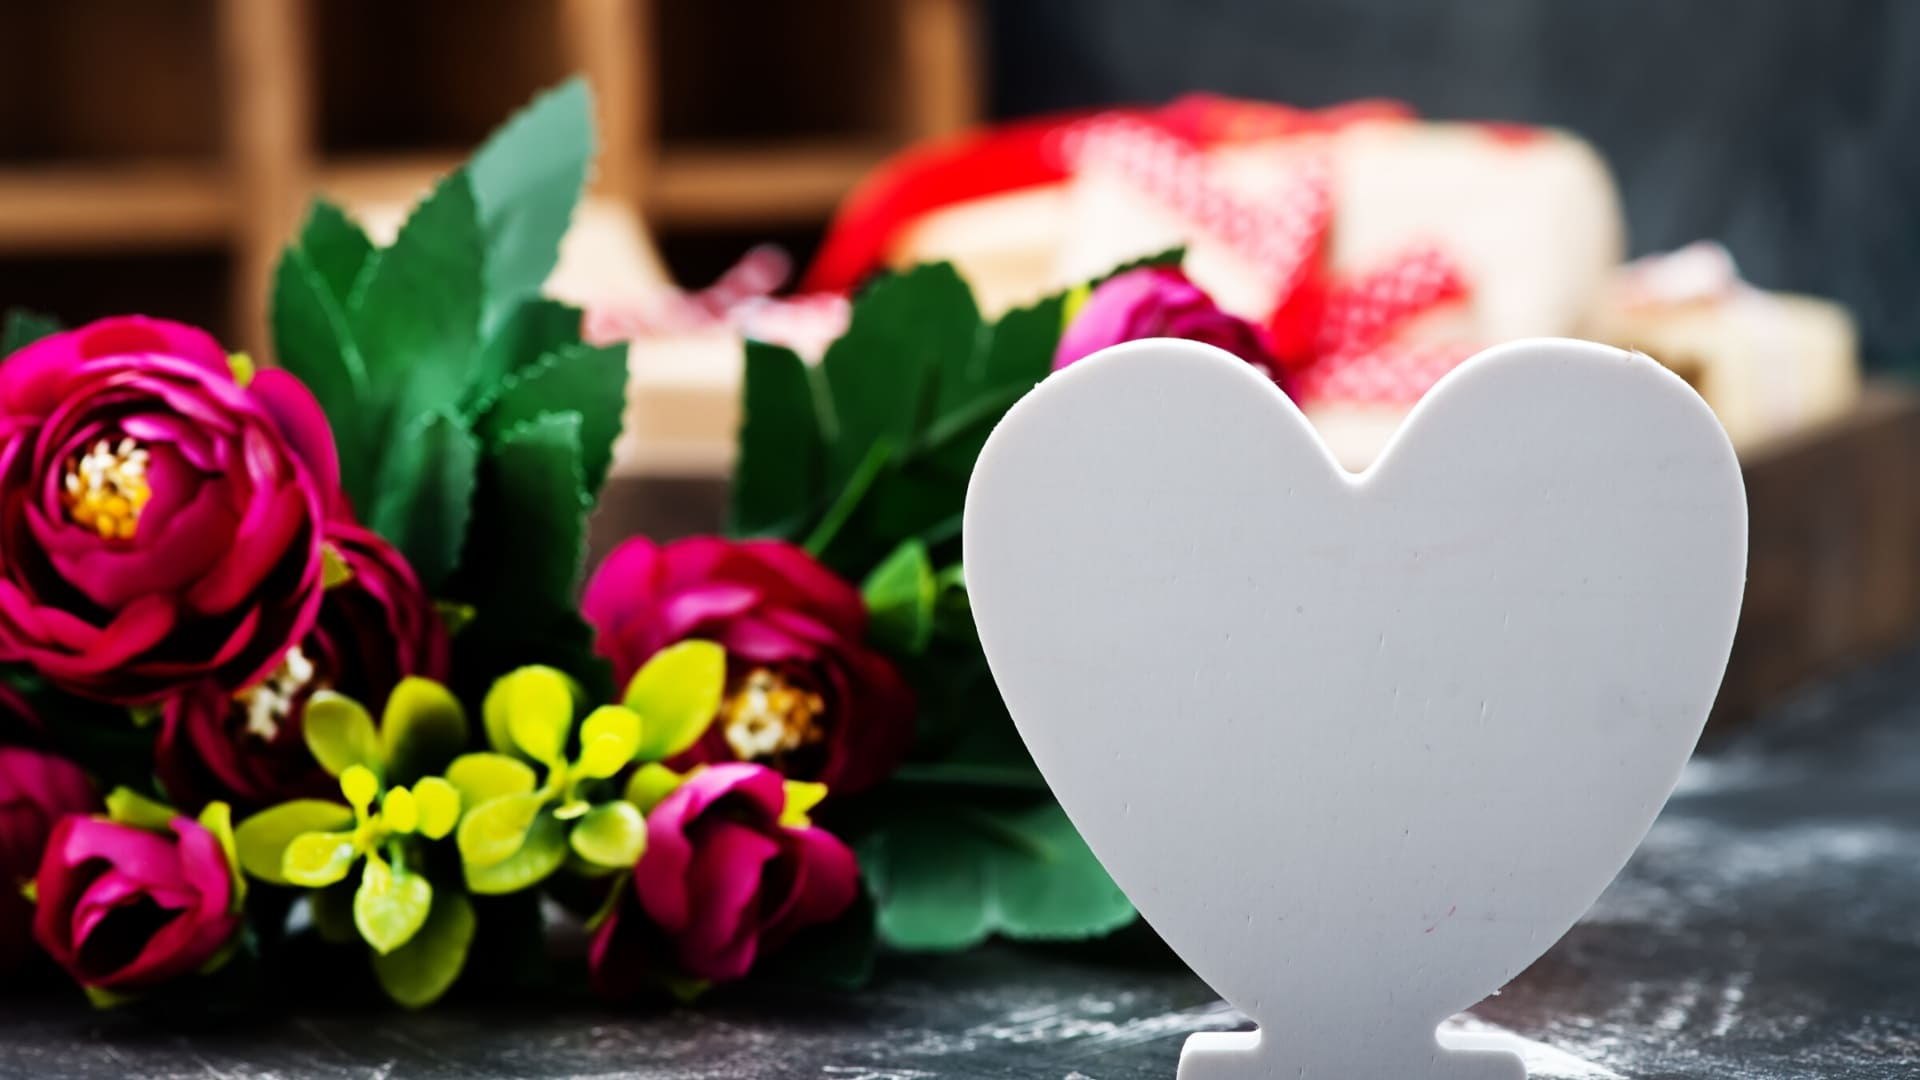 Love background images hd